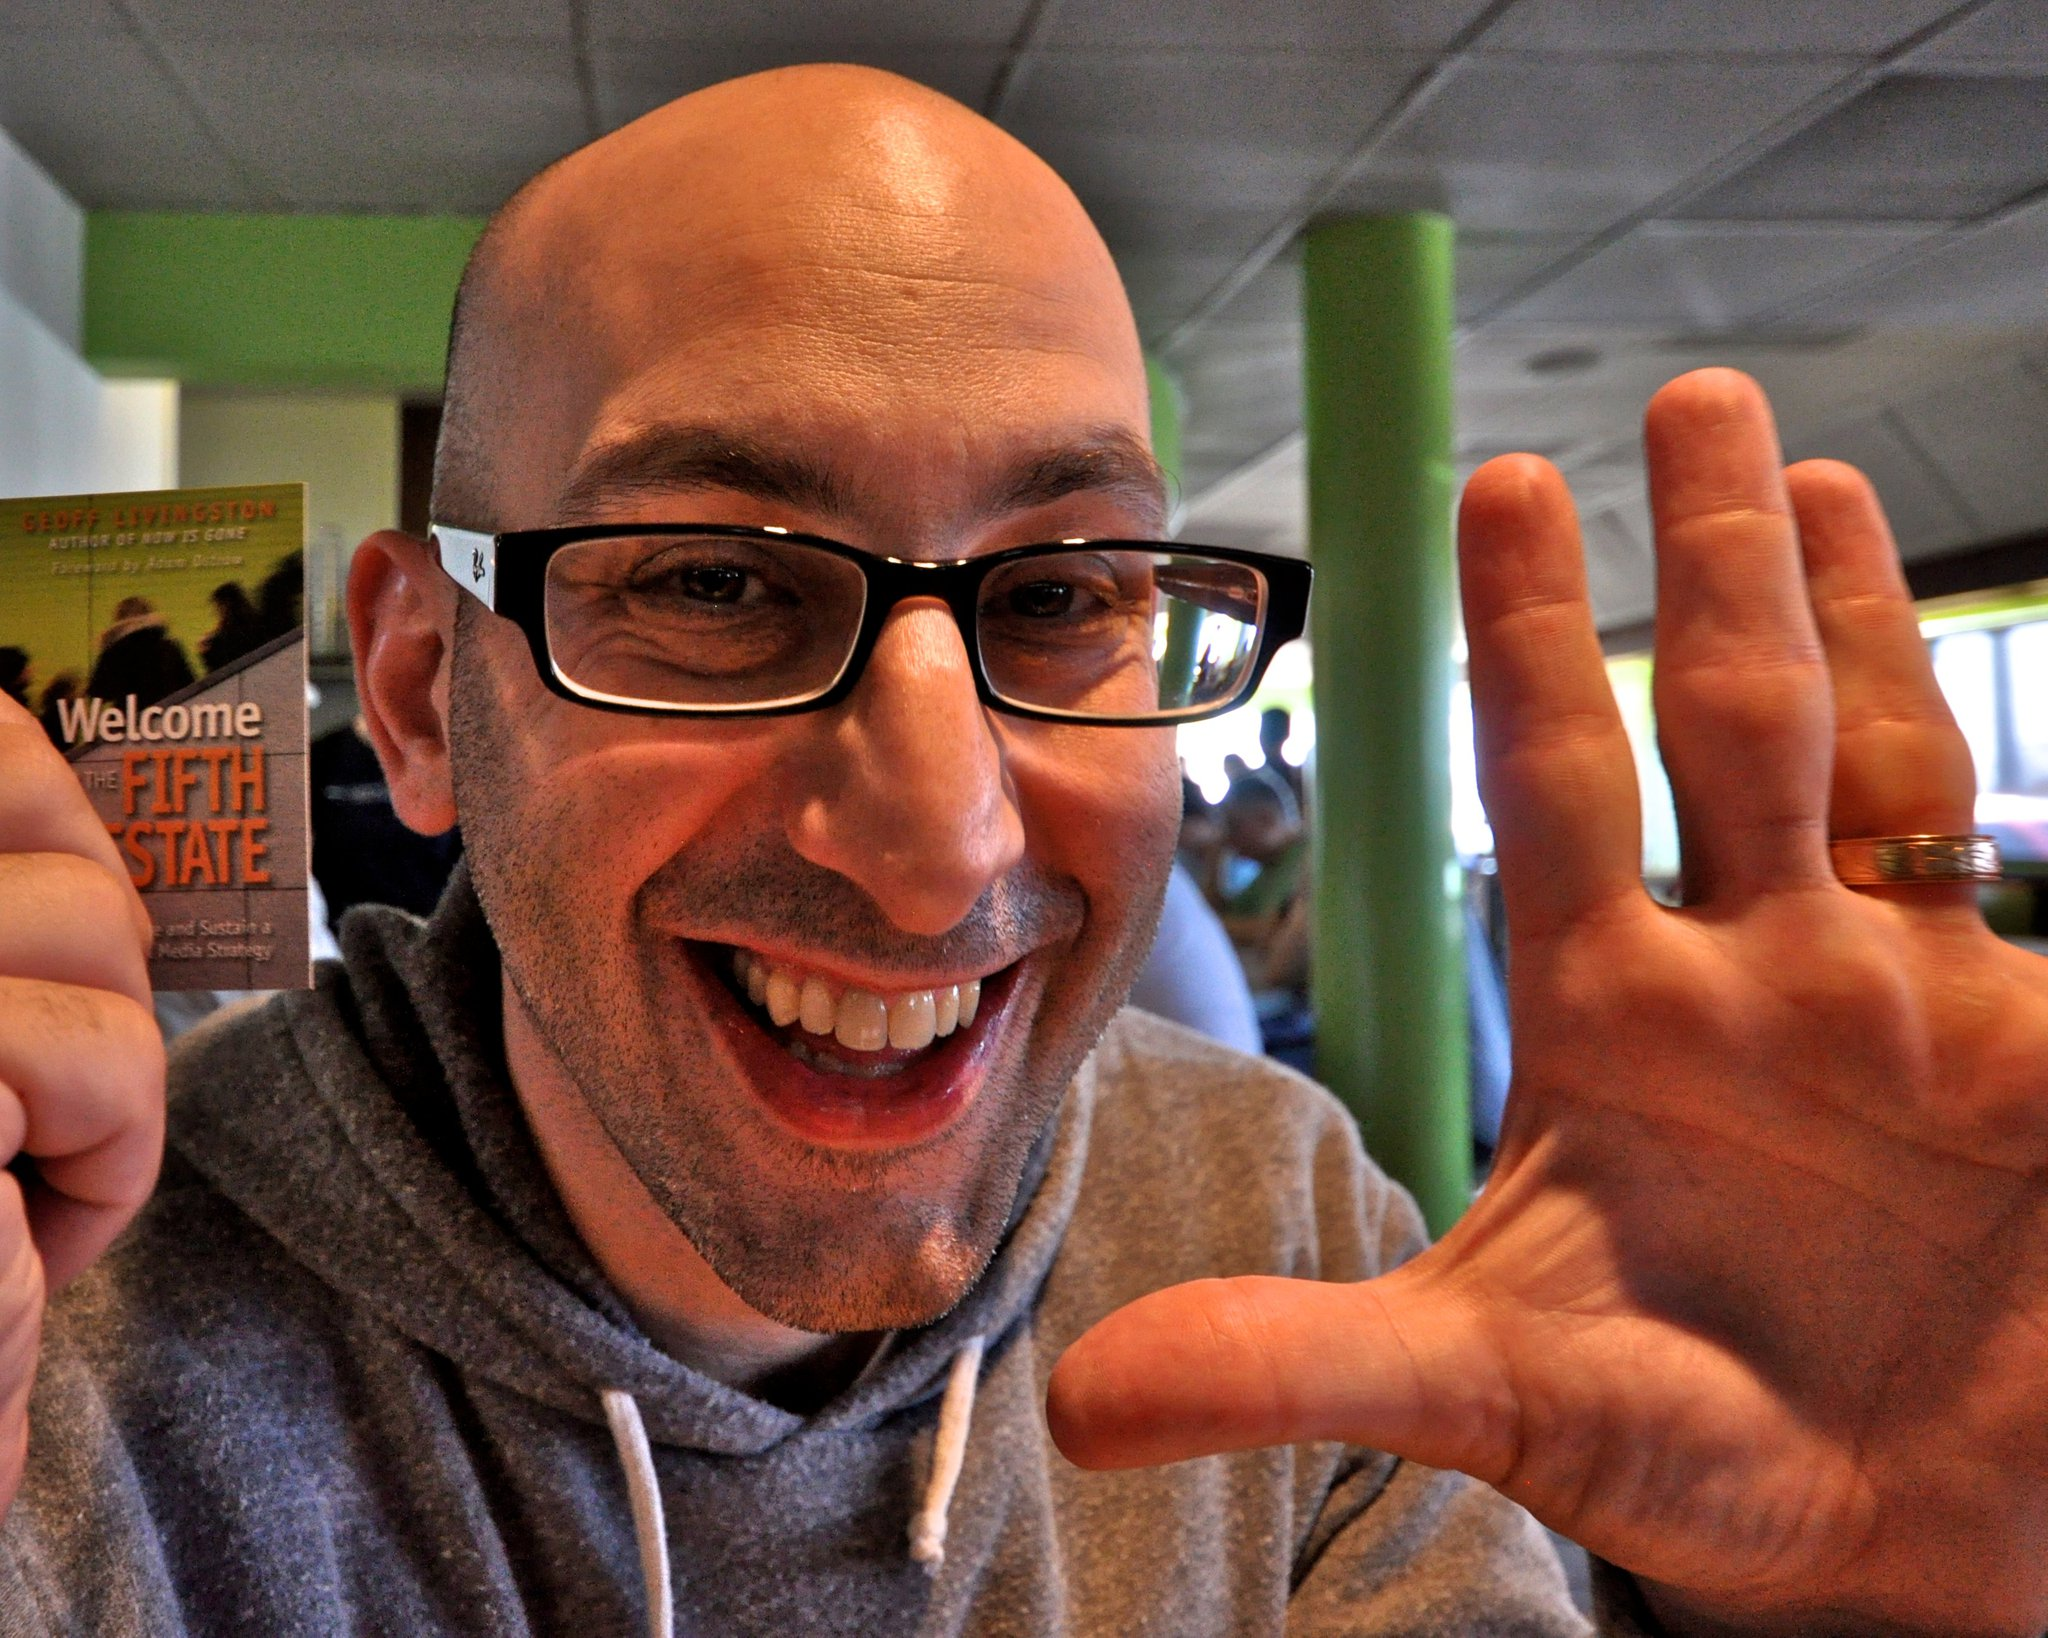 A Special Livefyre Q&A with Geoff Livingston